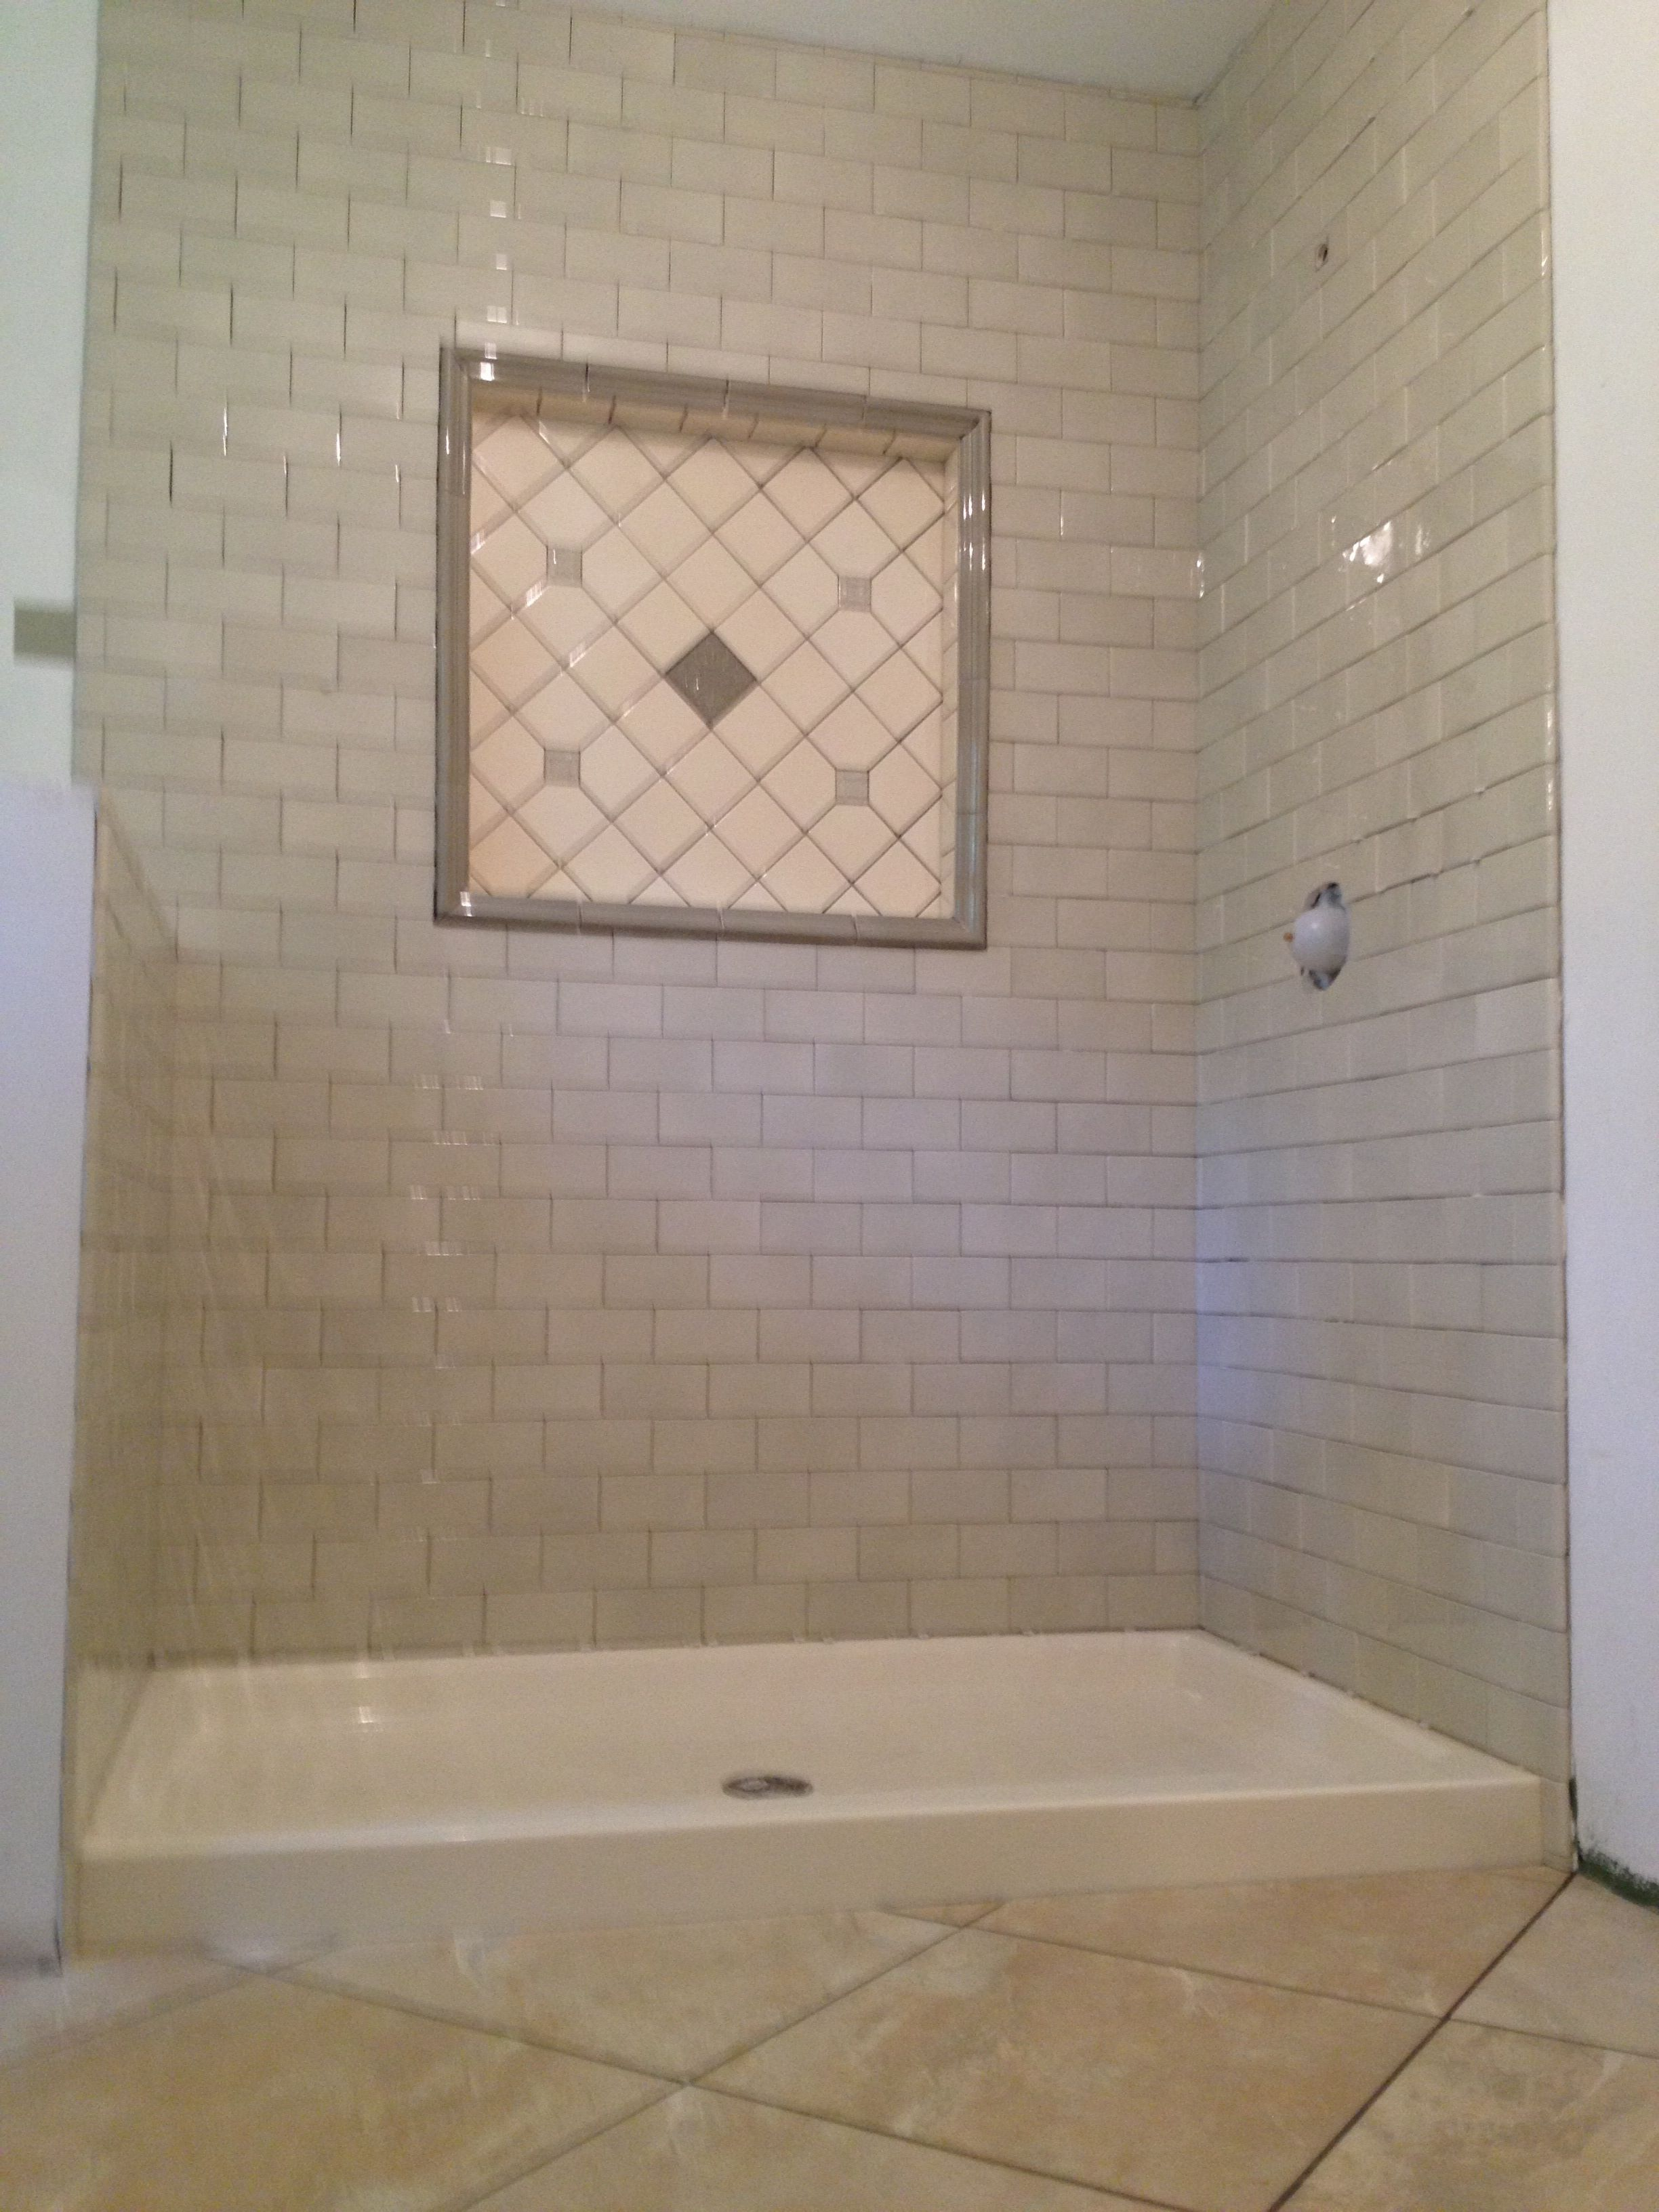 Decorative Shower Tile Shower Tile Inserts  Google Search  Konsteine  Pinterest